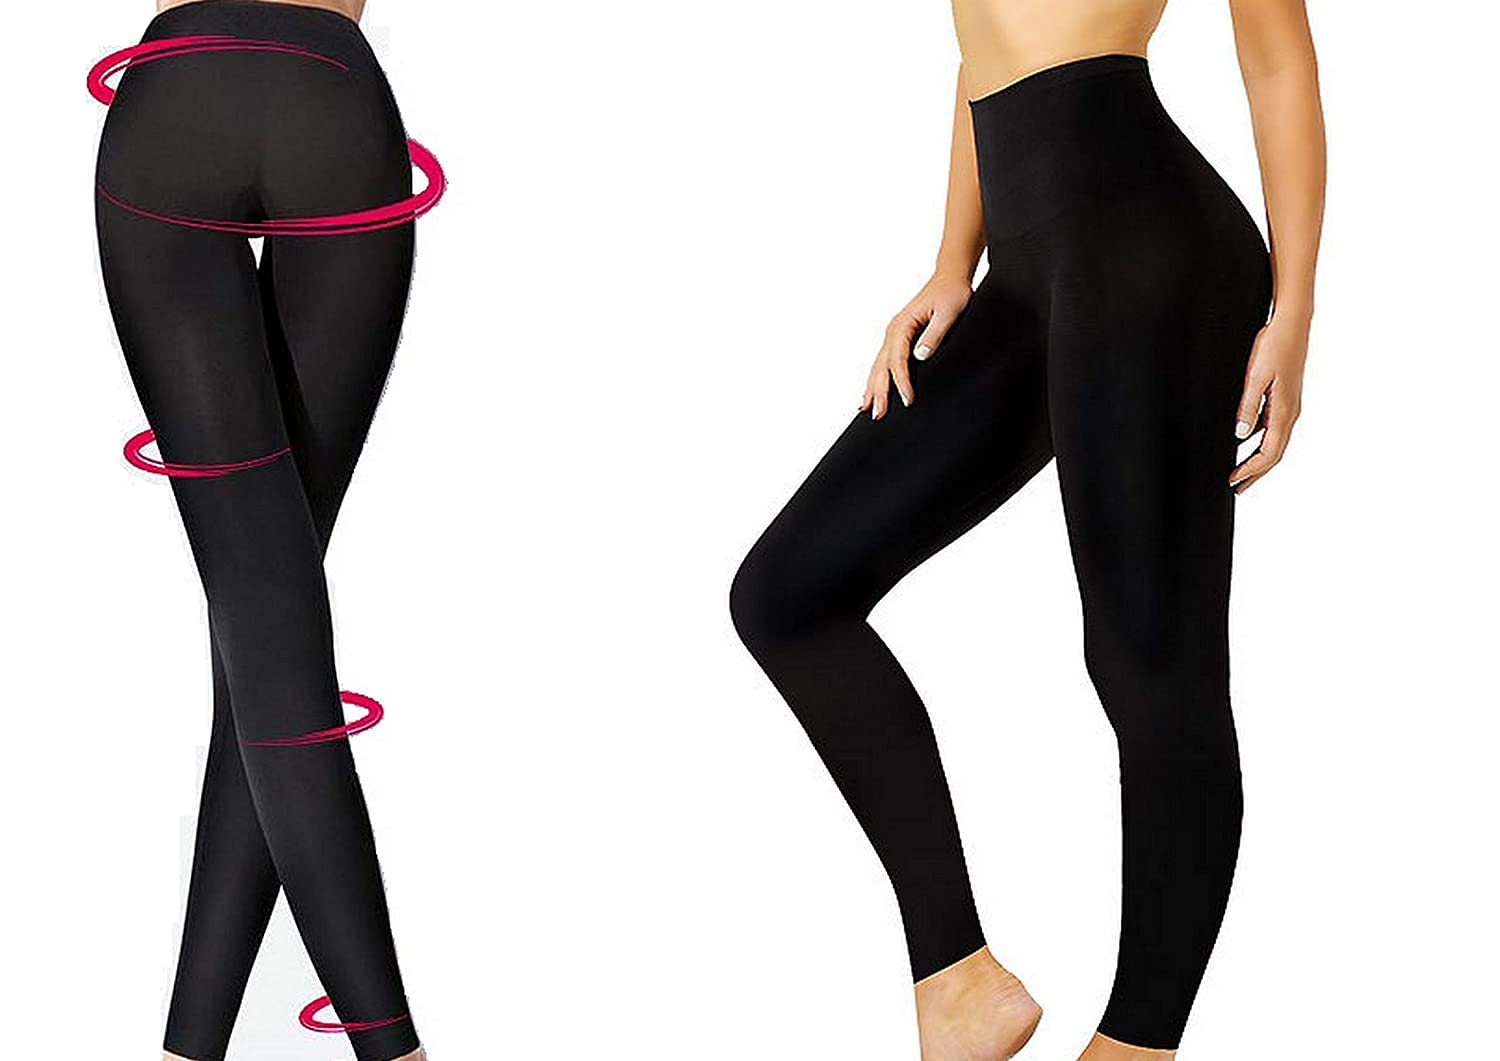 be585ef2dc0e4 Slimming Leggings Seamless Shapewear Women Ladies Tummy Legs Body Control  (Set of 1 Black S-3XL)  Amazon.co.uk  Clothing